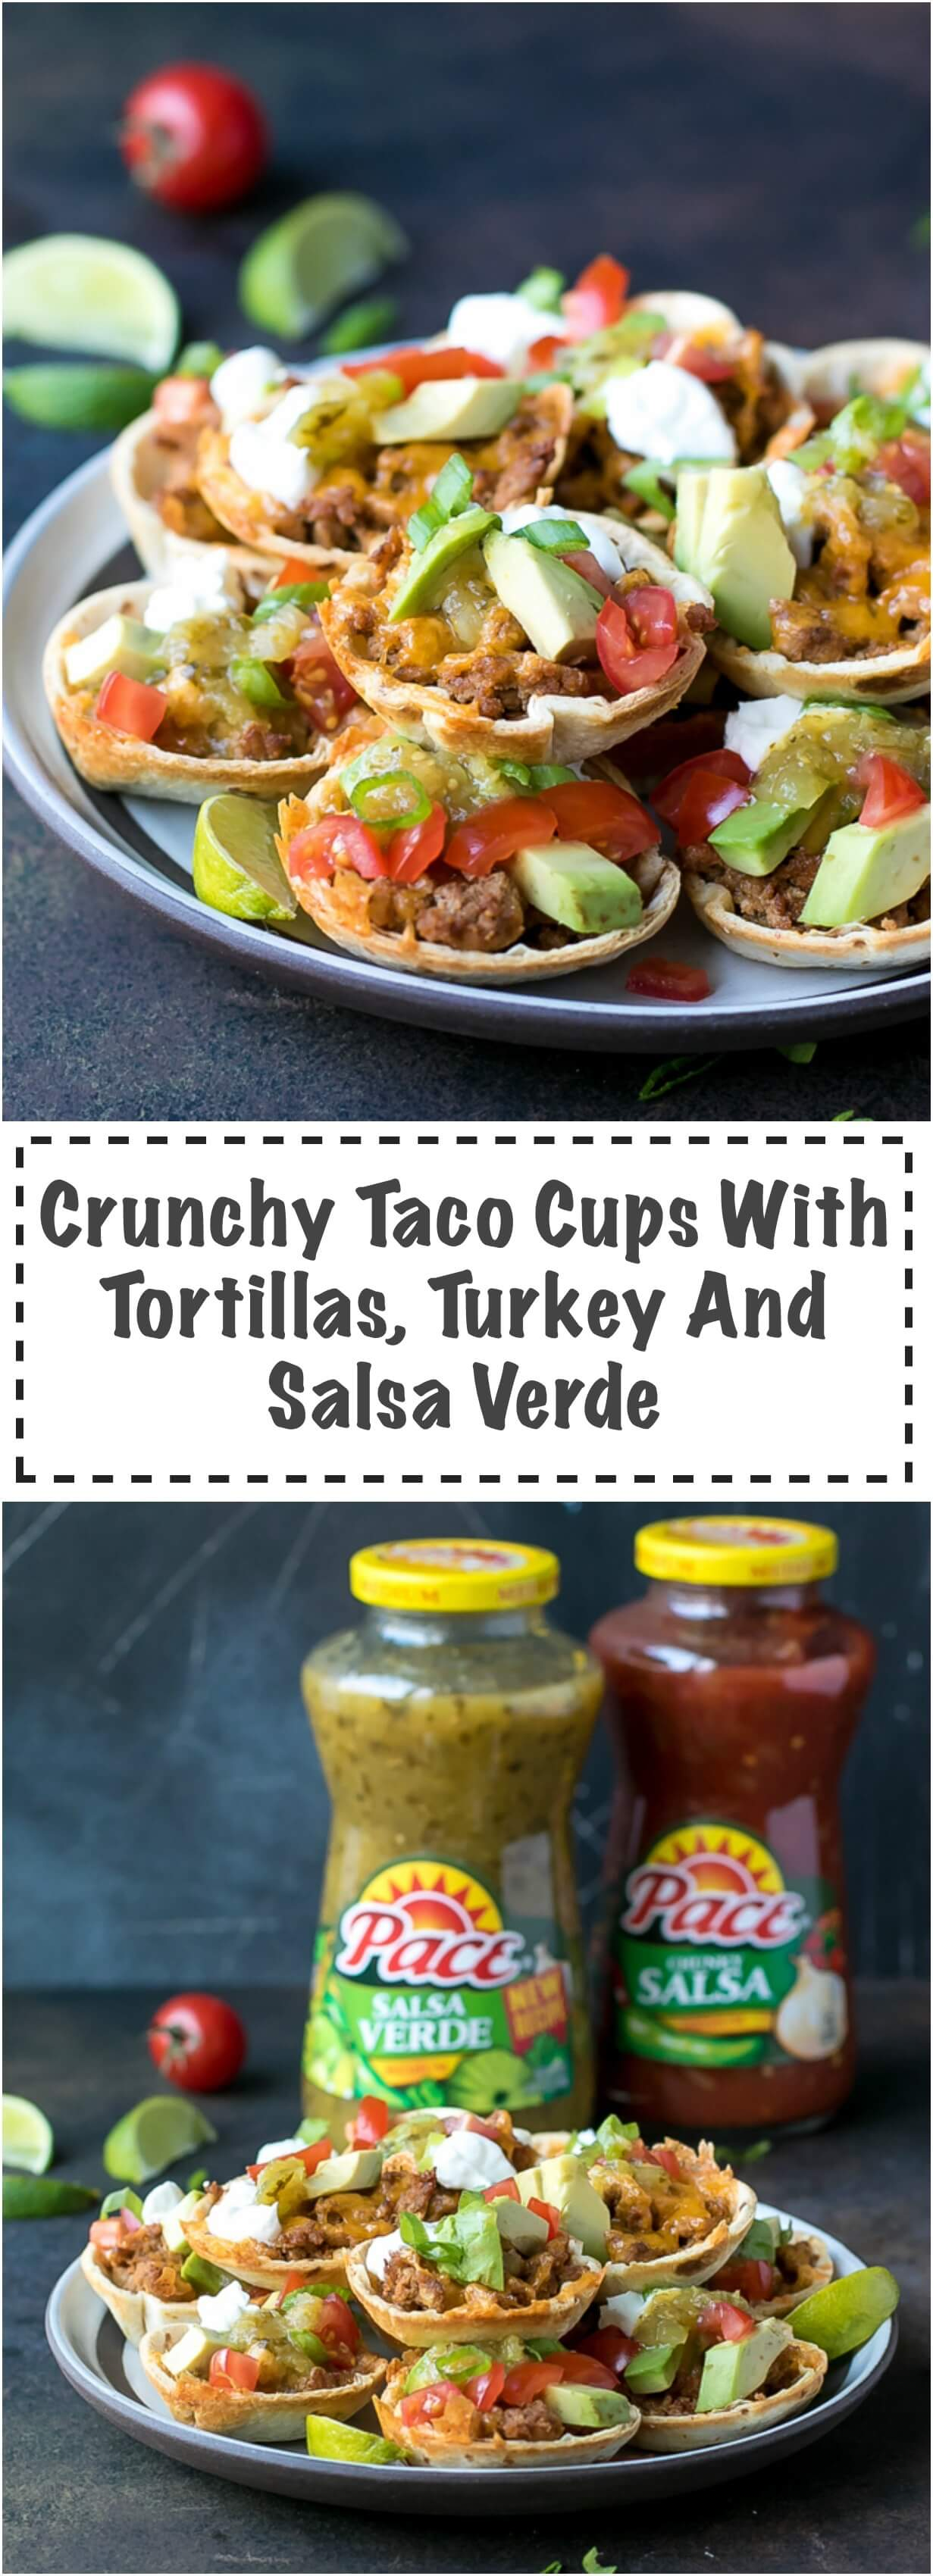 Crunchy Taco Cups With Tortillas, Turkey And Salsa Verde - very quick and easy to make, with amazing flavors, these mini bites are perfect for a Game Day party appetizer. Made with Pace® Salsa Verde, that I got at the Hispanic aisle at my local Walmart, ground turkey, cheese, tomatoes and avocado.